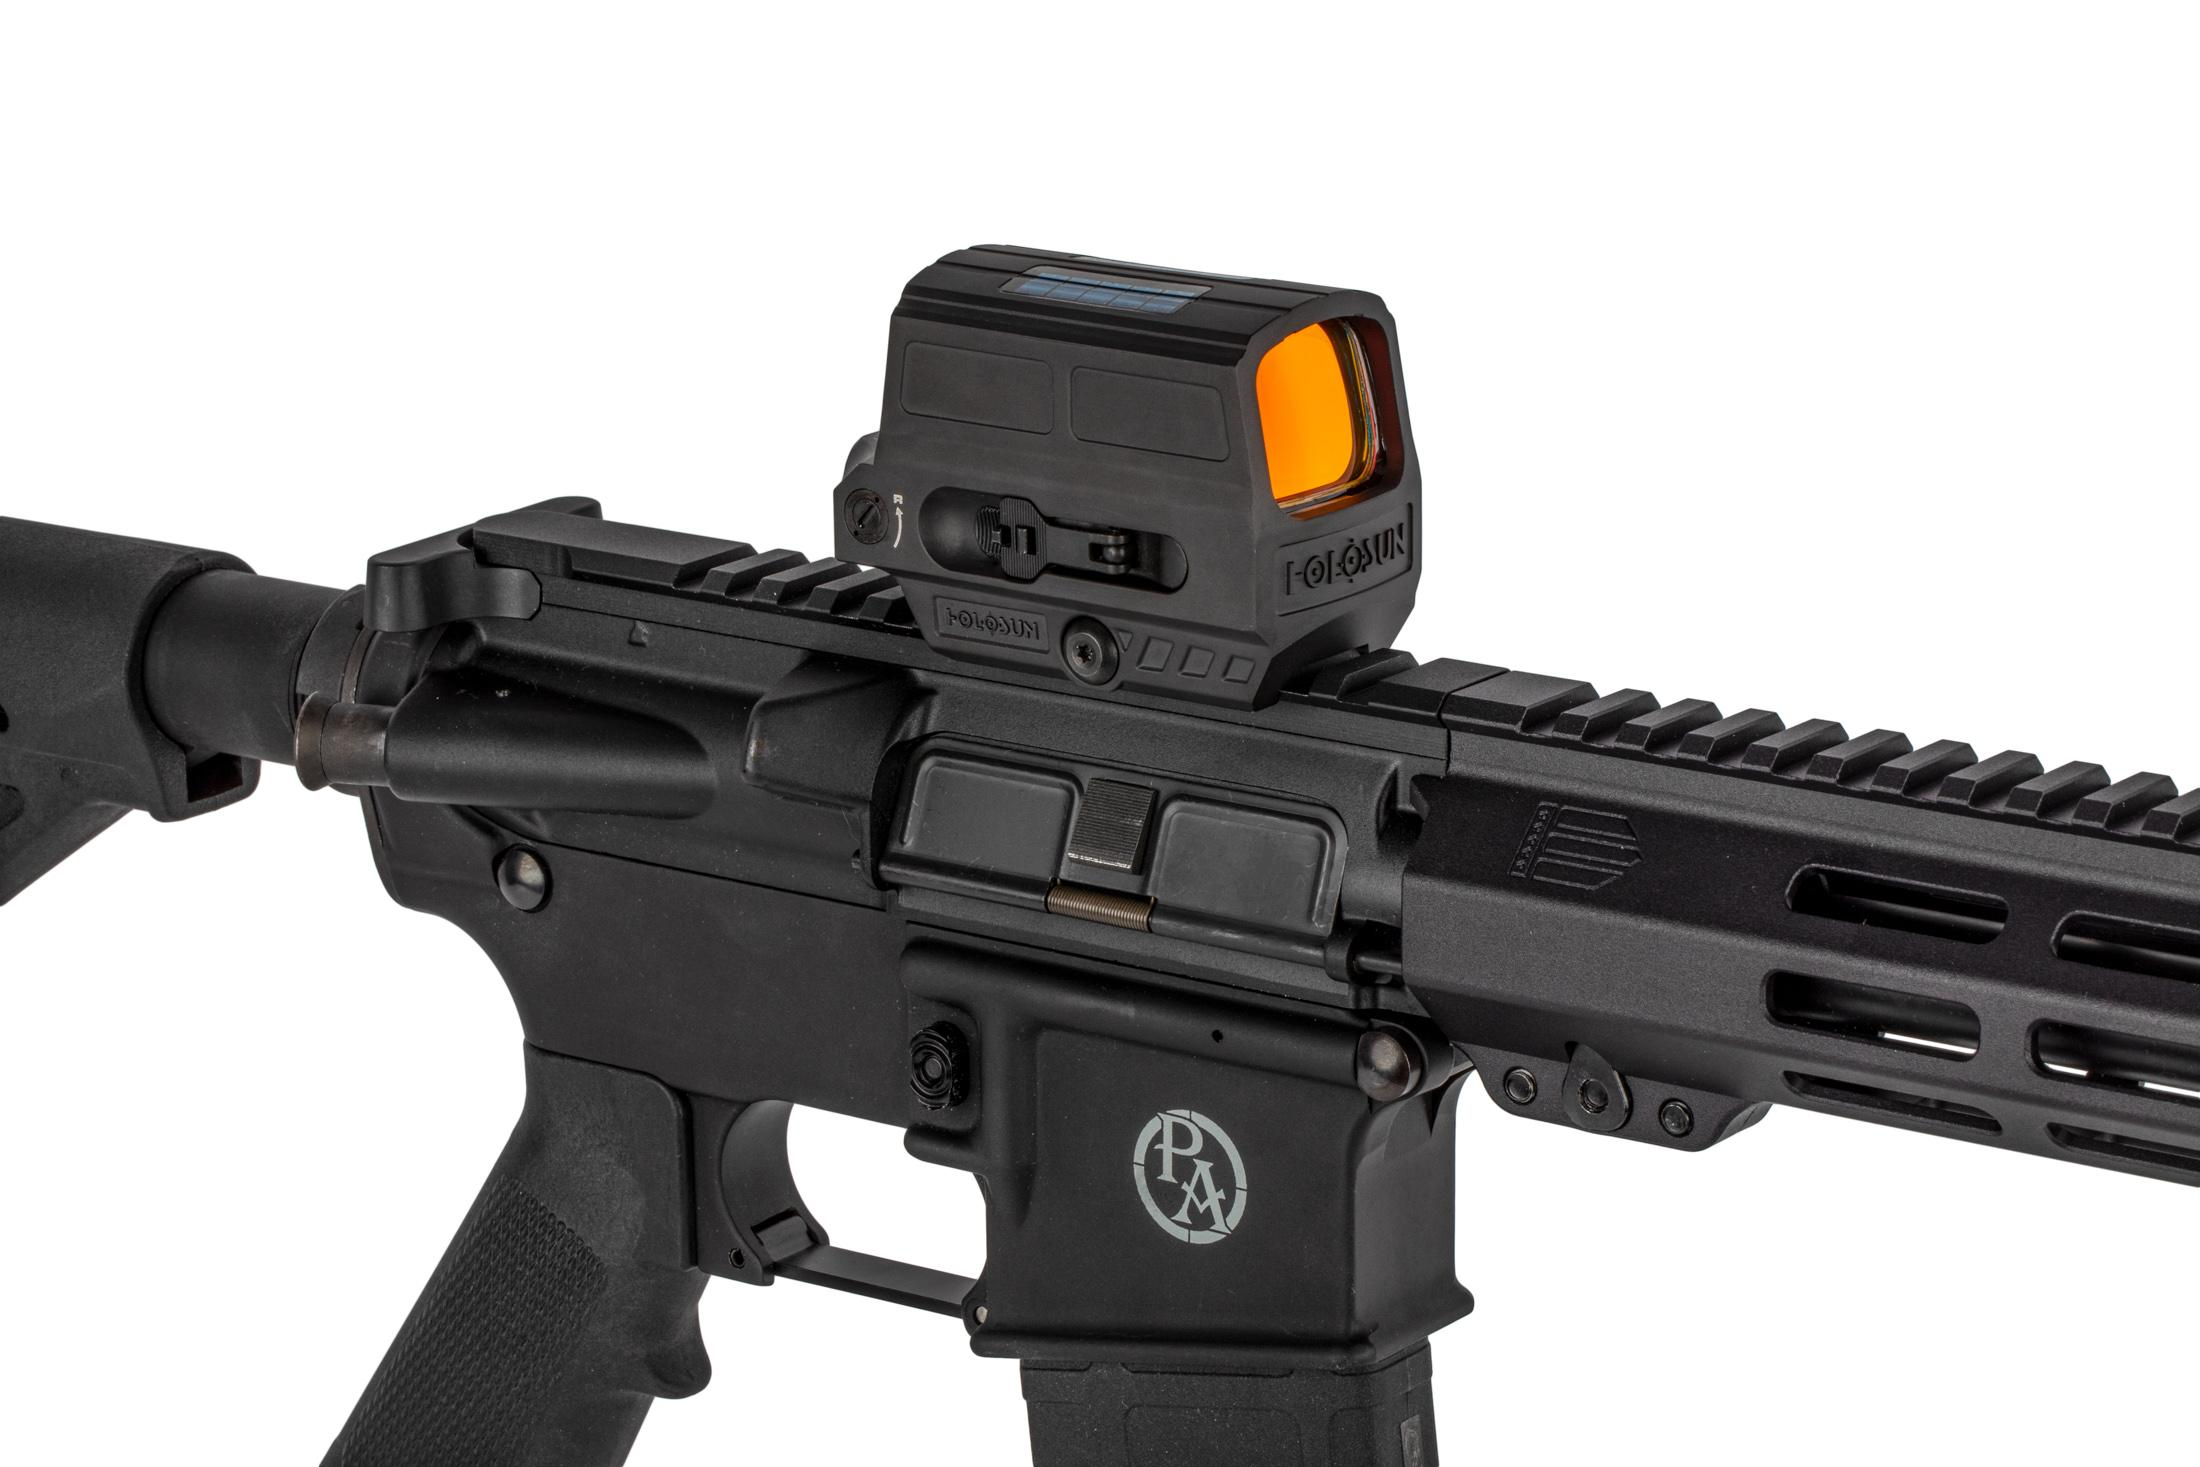 The Holosun HS512C optic features an integrated picatinny rail mount and a fully anodized aluminum construction